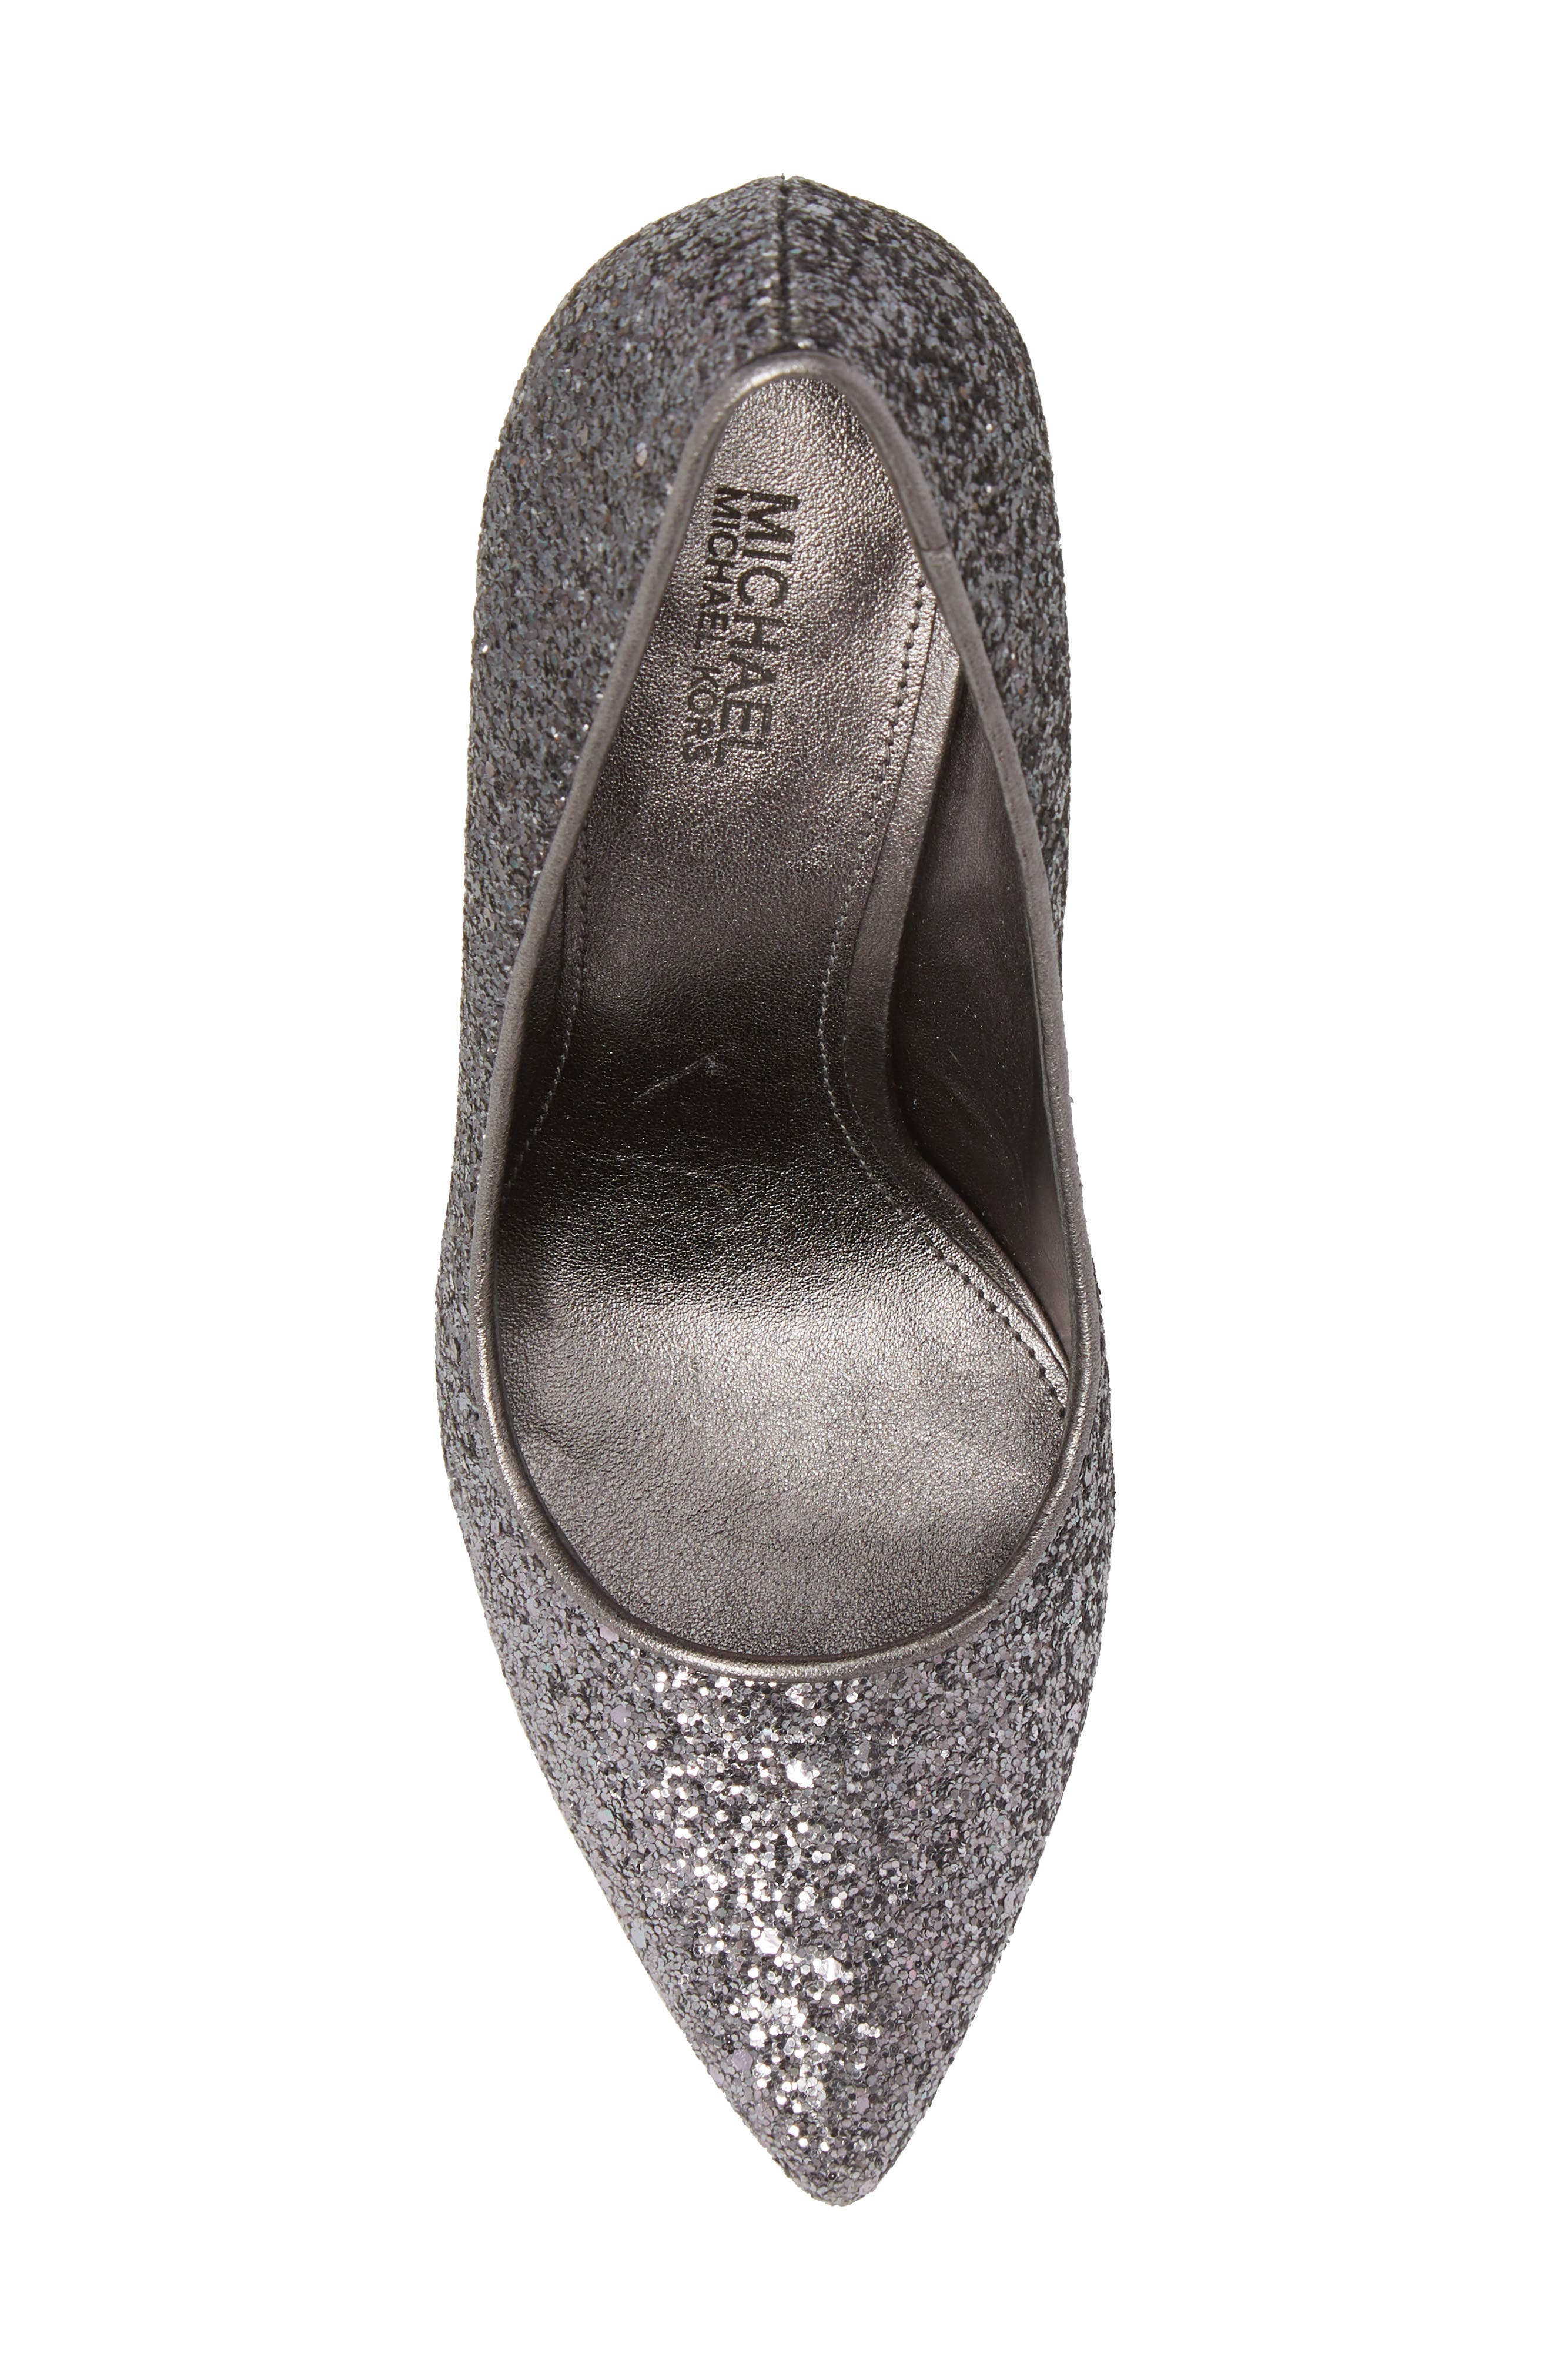 Claire Pointy Toe Pump,                             Alternate thumbnail 5, color,                             GUNMETAL GLITTER FABRIC